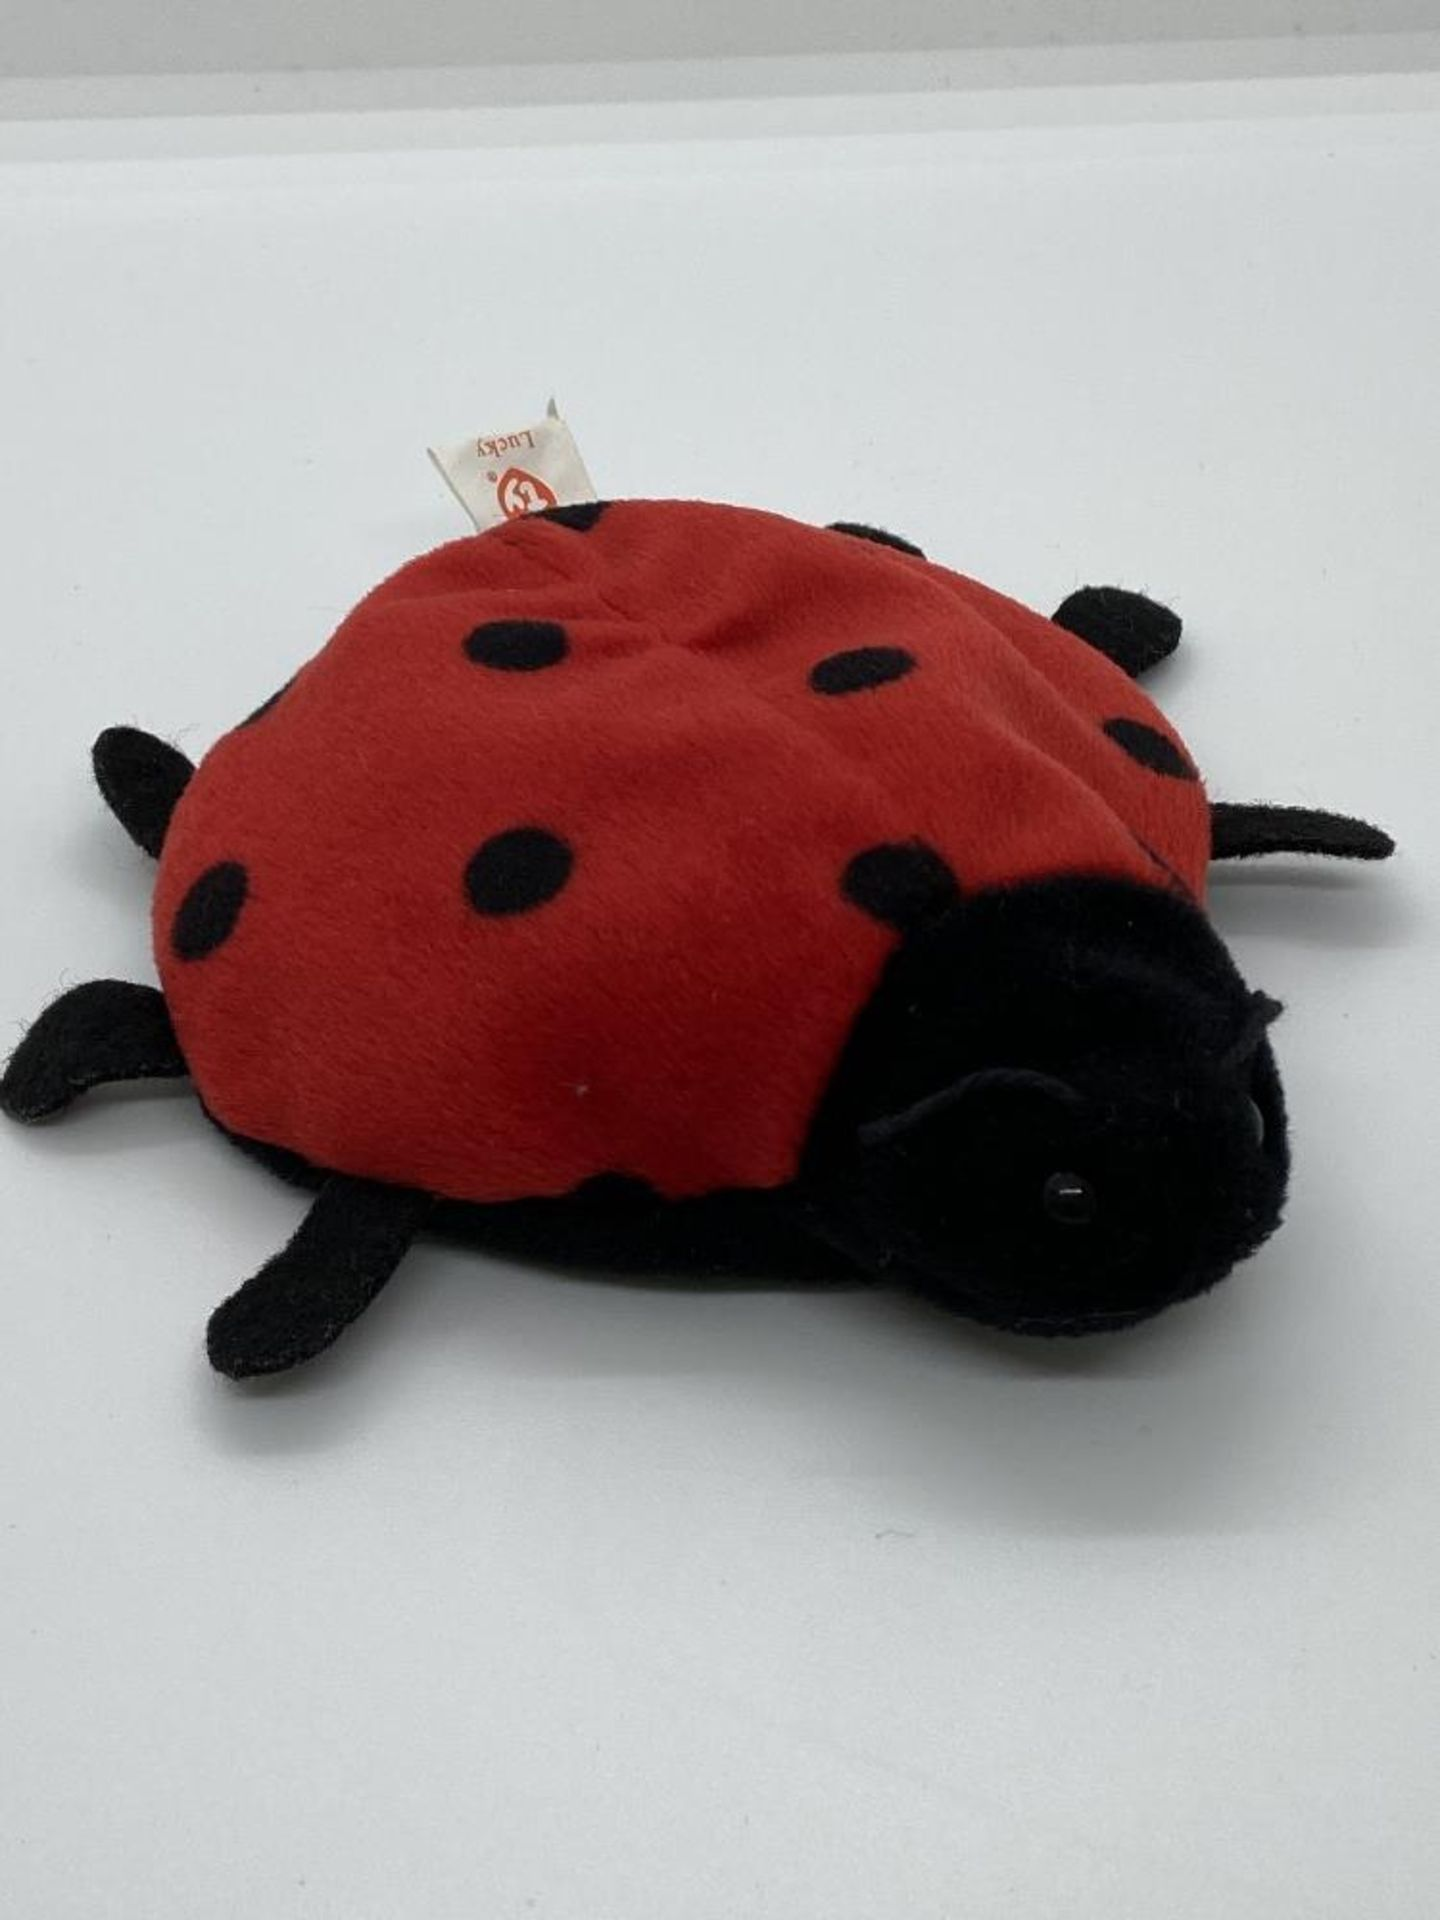 Ty Beanie Babies Lucky, The Ladybug, EARLY GEN 1993, PVC Pellets, w/o Hang Tag - Image 2 of 6